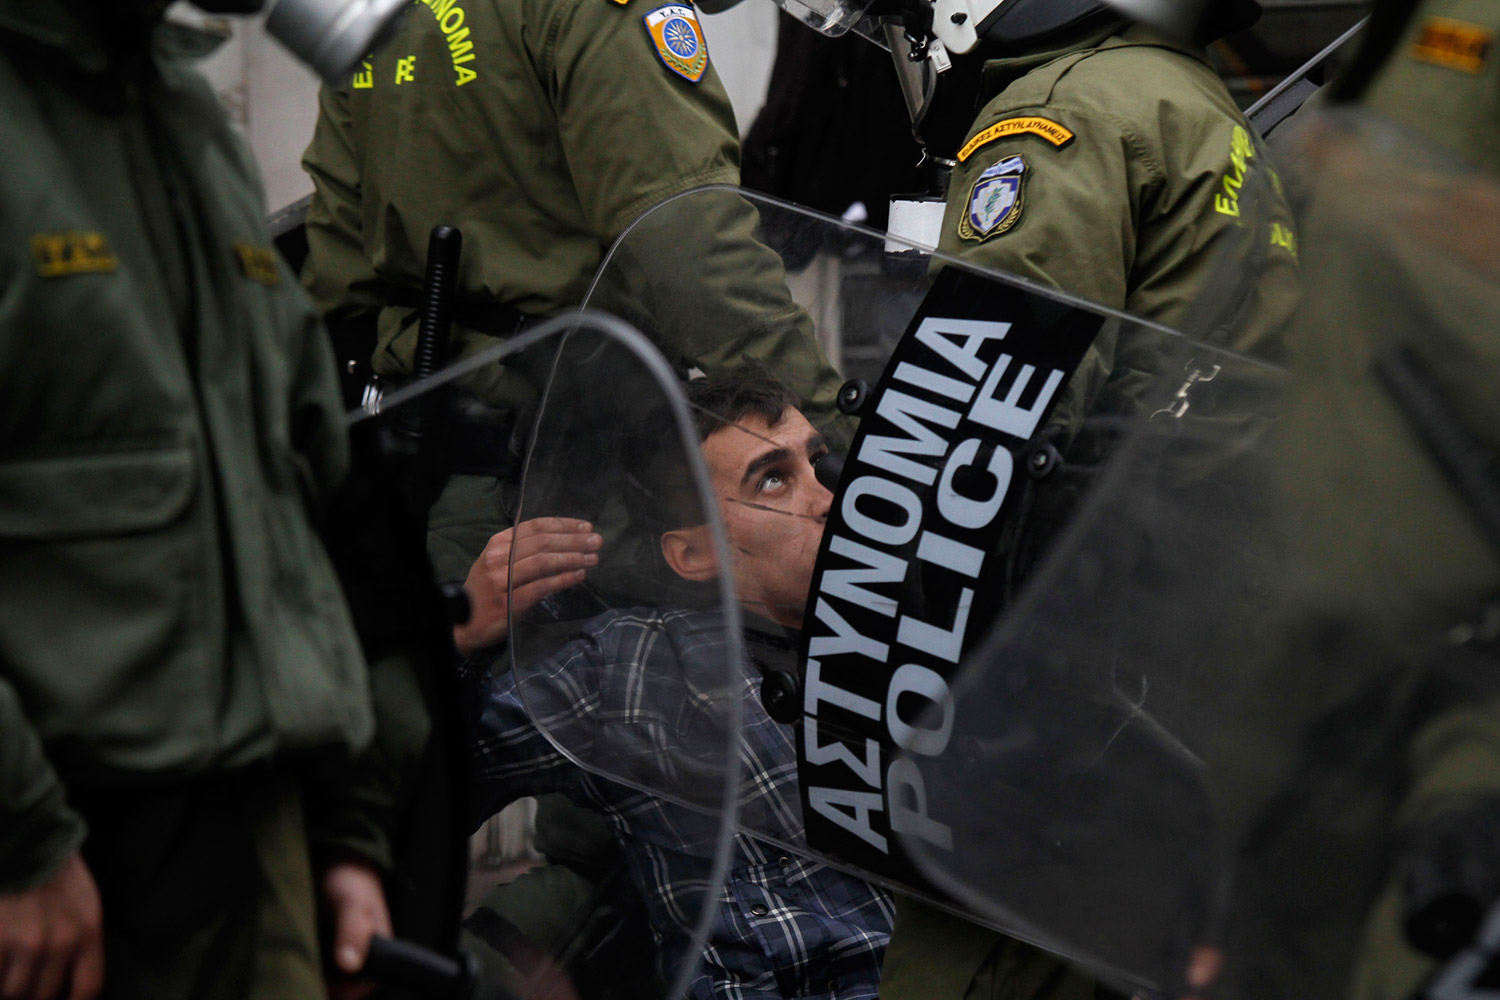 December 6, 2011. Riot police officers detain a protester during clashes in Athens. Protesting high school students hurled rocks and bottles during clashes clashed with police during a rally to mark the third anniversary of the fatal police shooting of a teenager in central Athens.